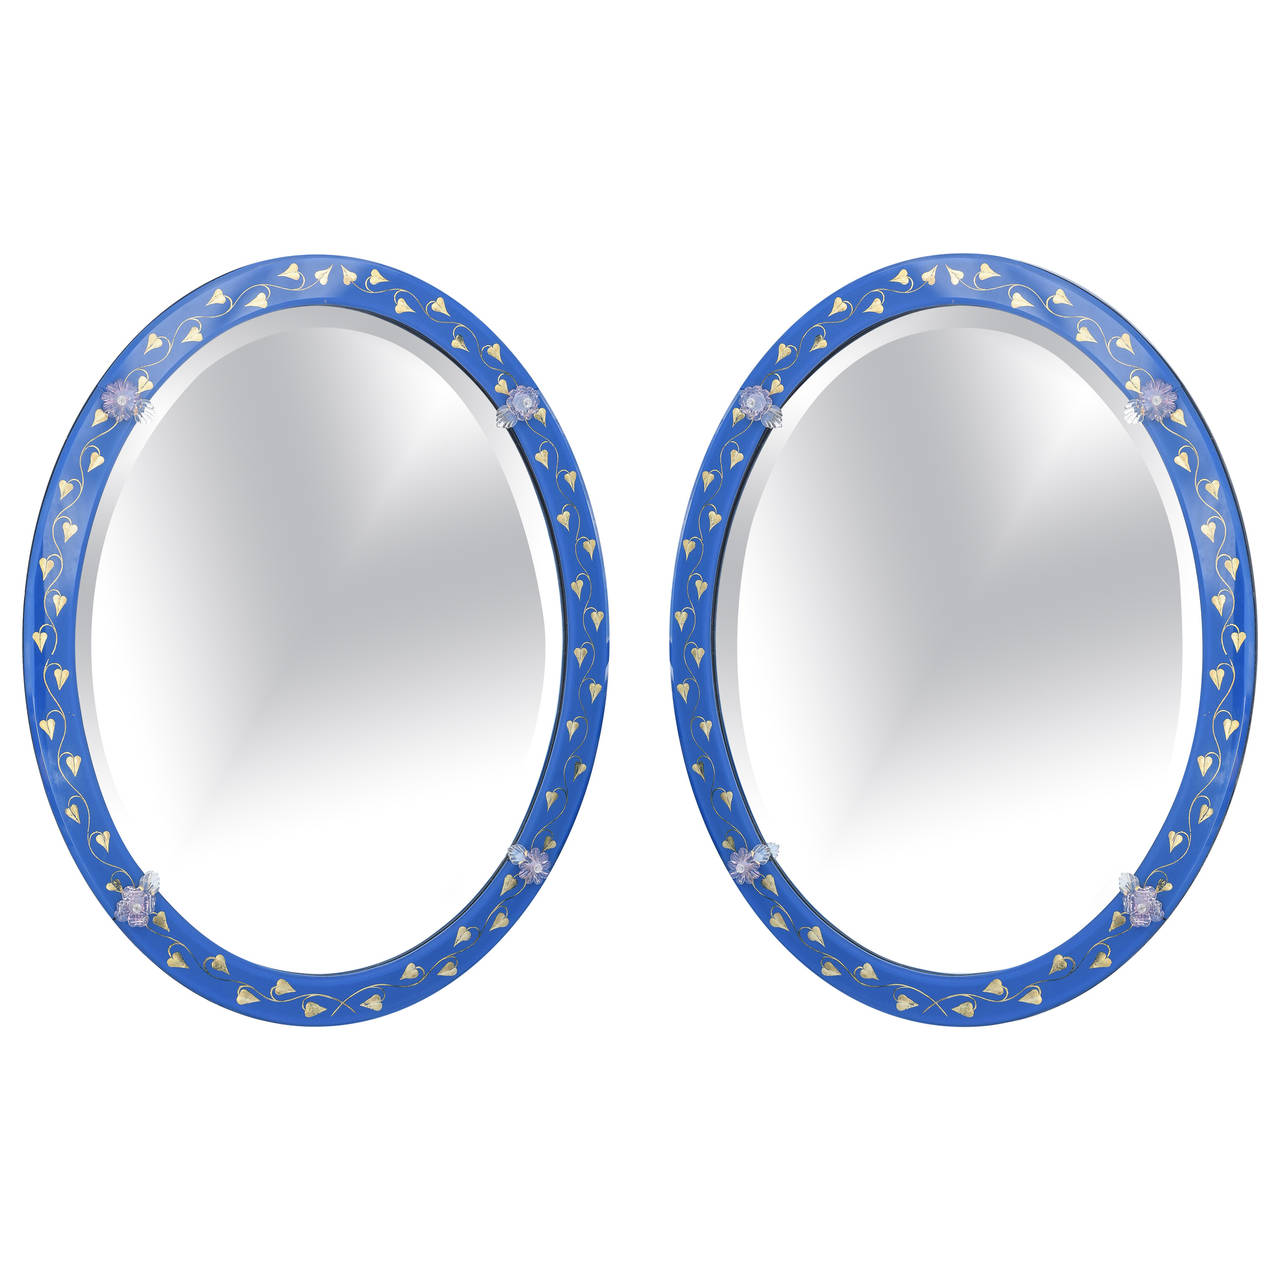 Pair Of Oval Venetian Mirrors With Lapis Blue Glass Frame